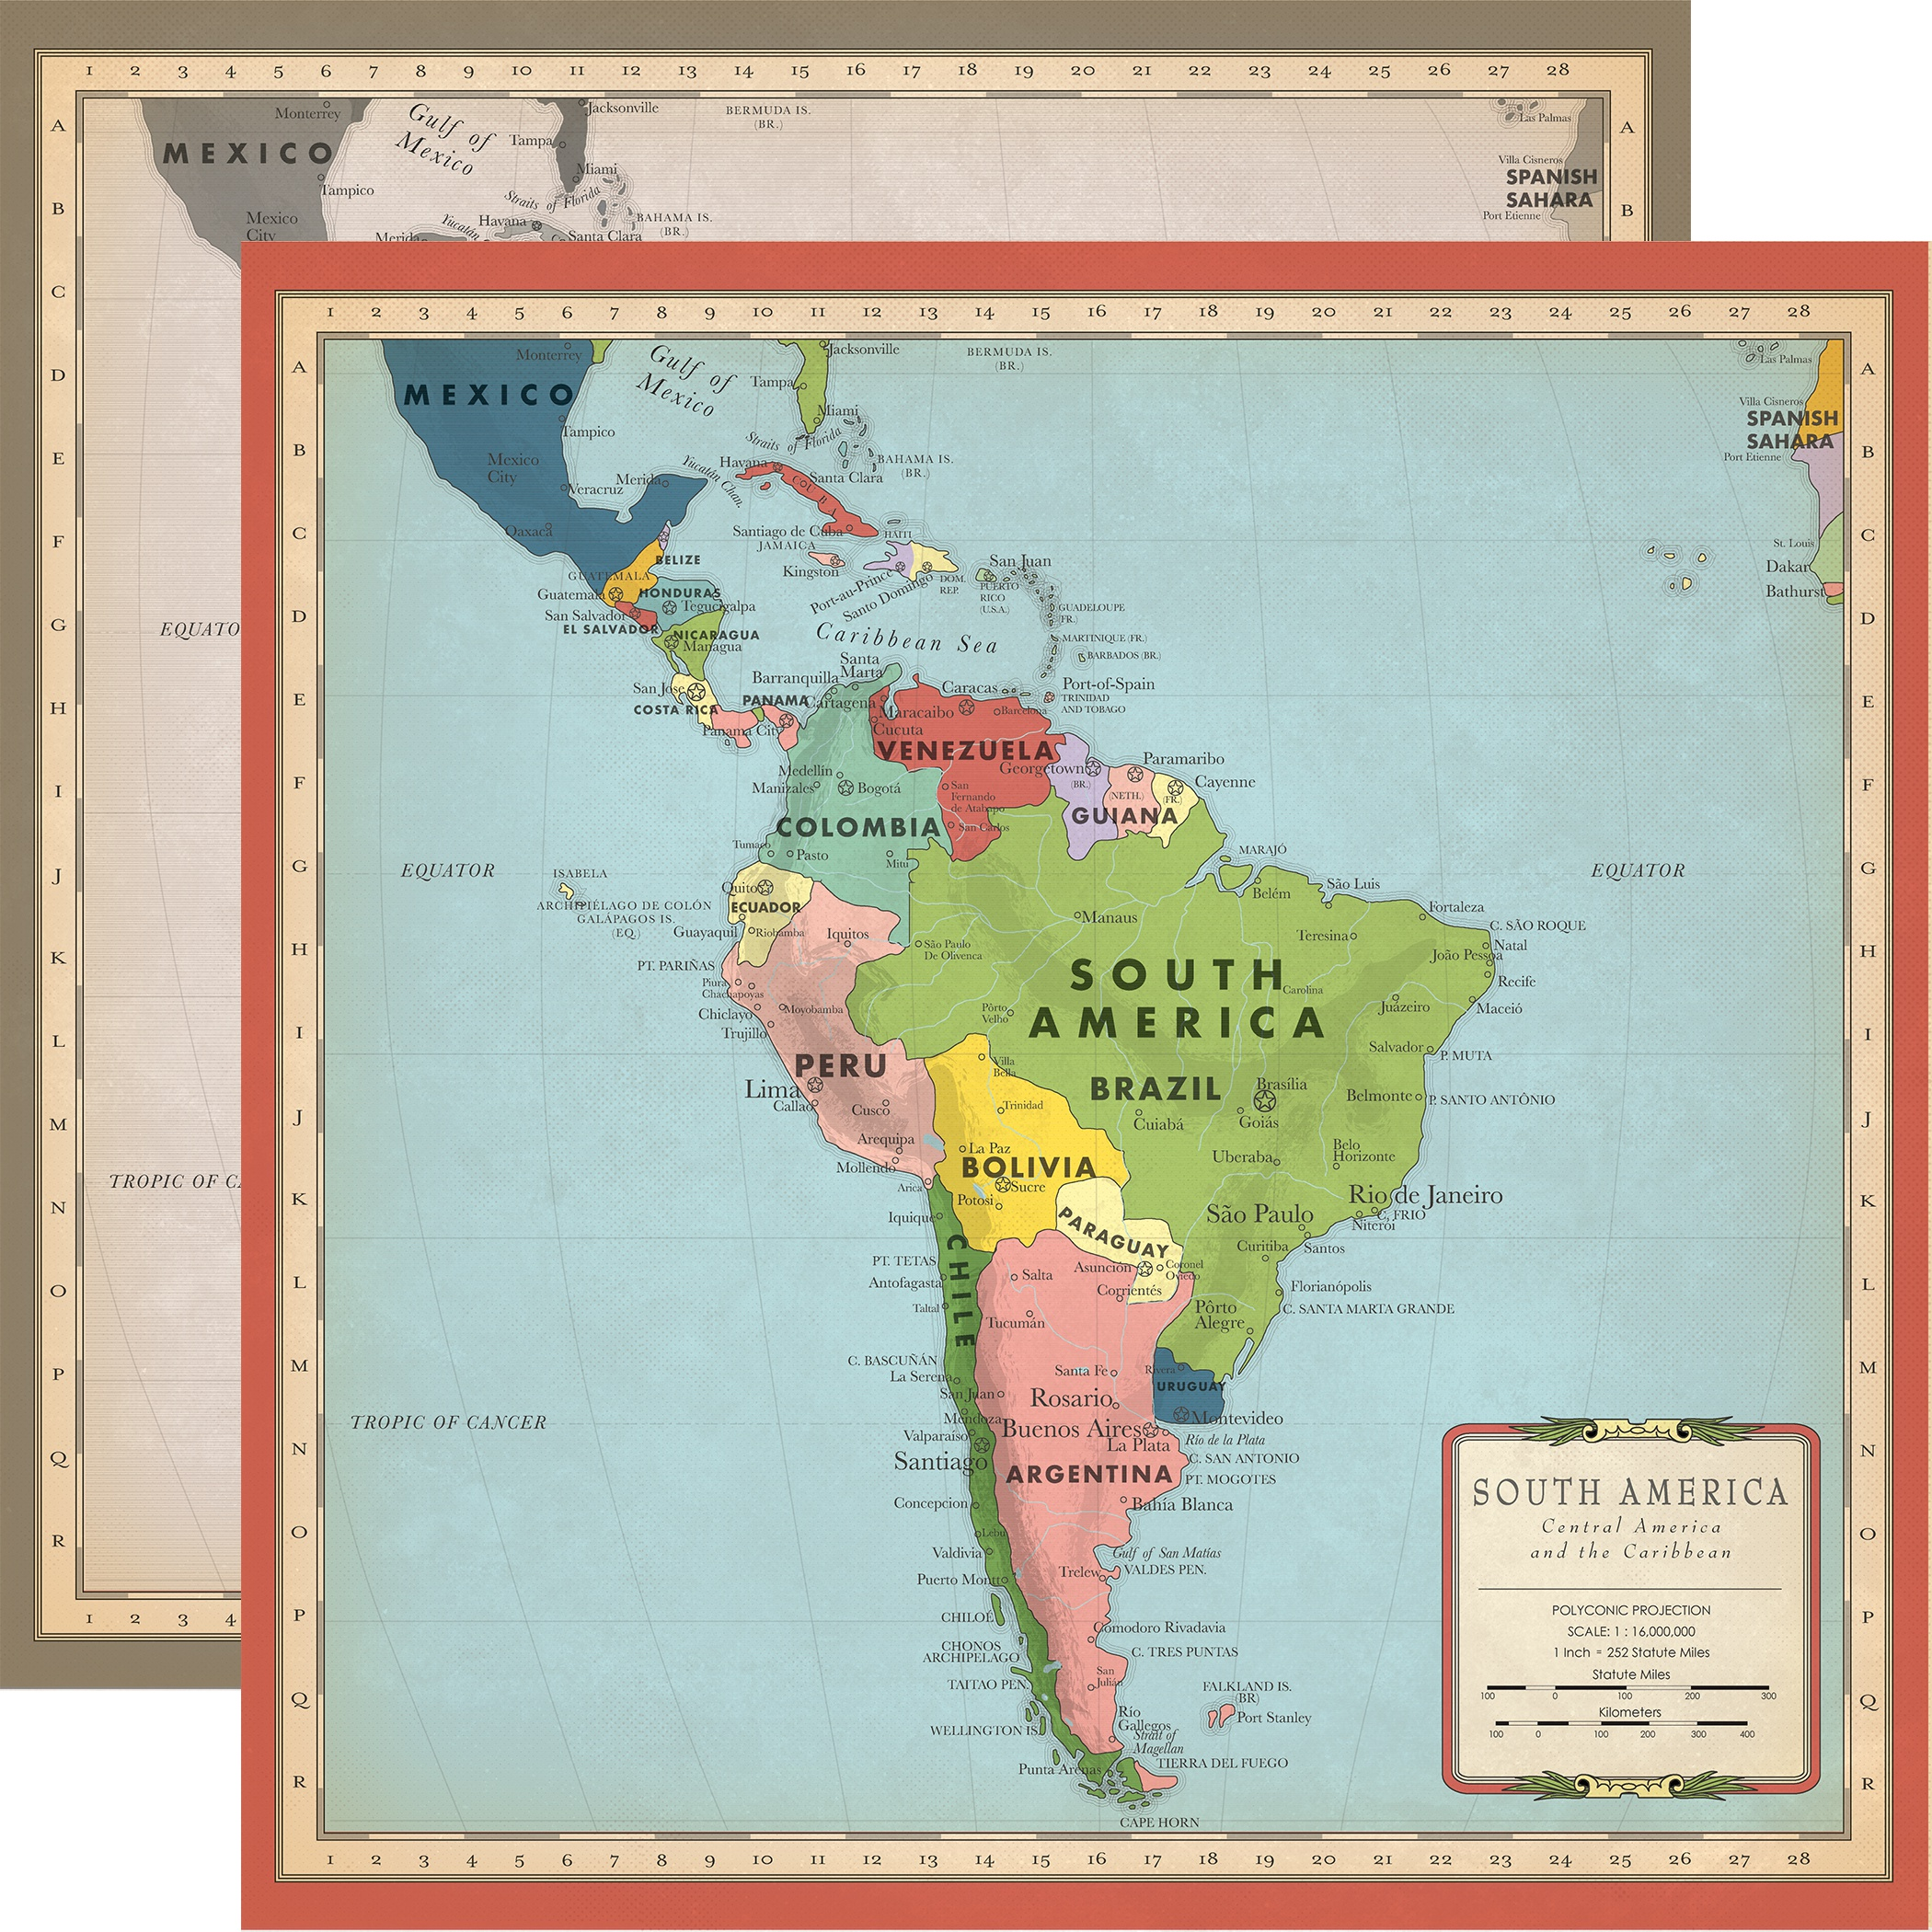 Cartography No 2 SOUTH AMERICA